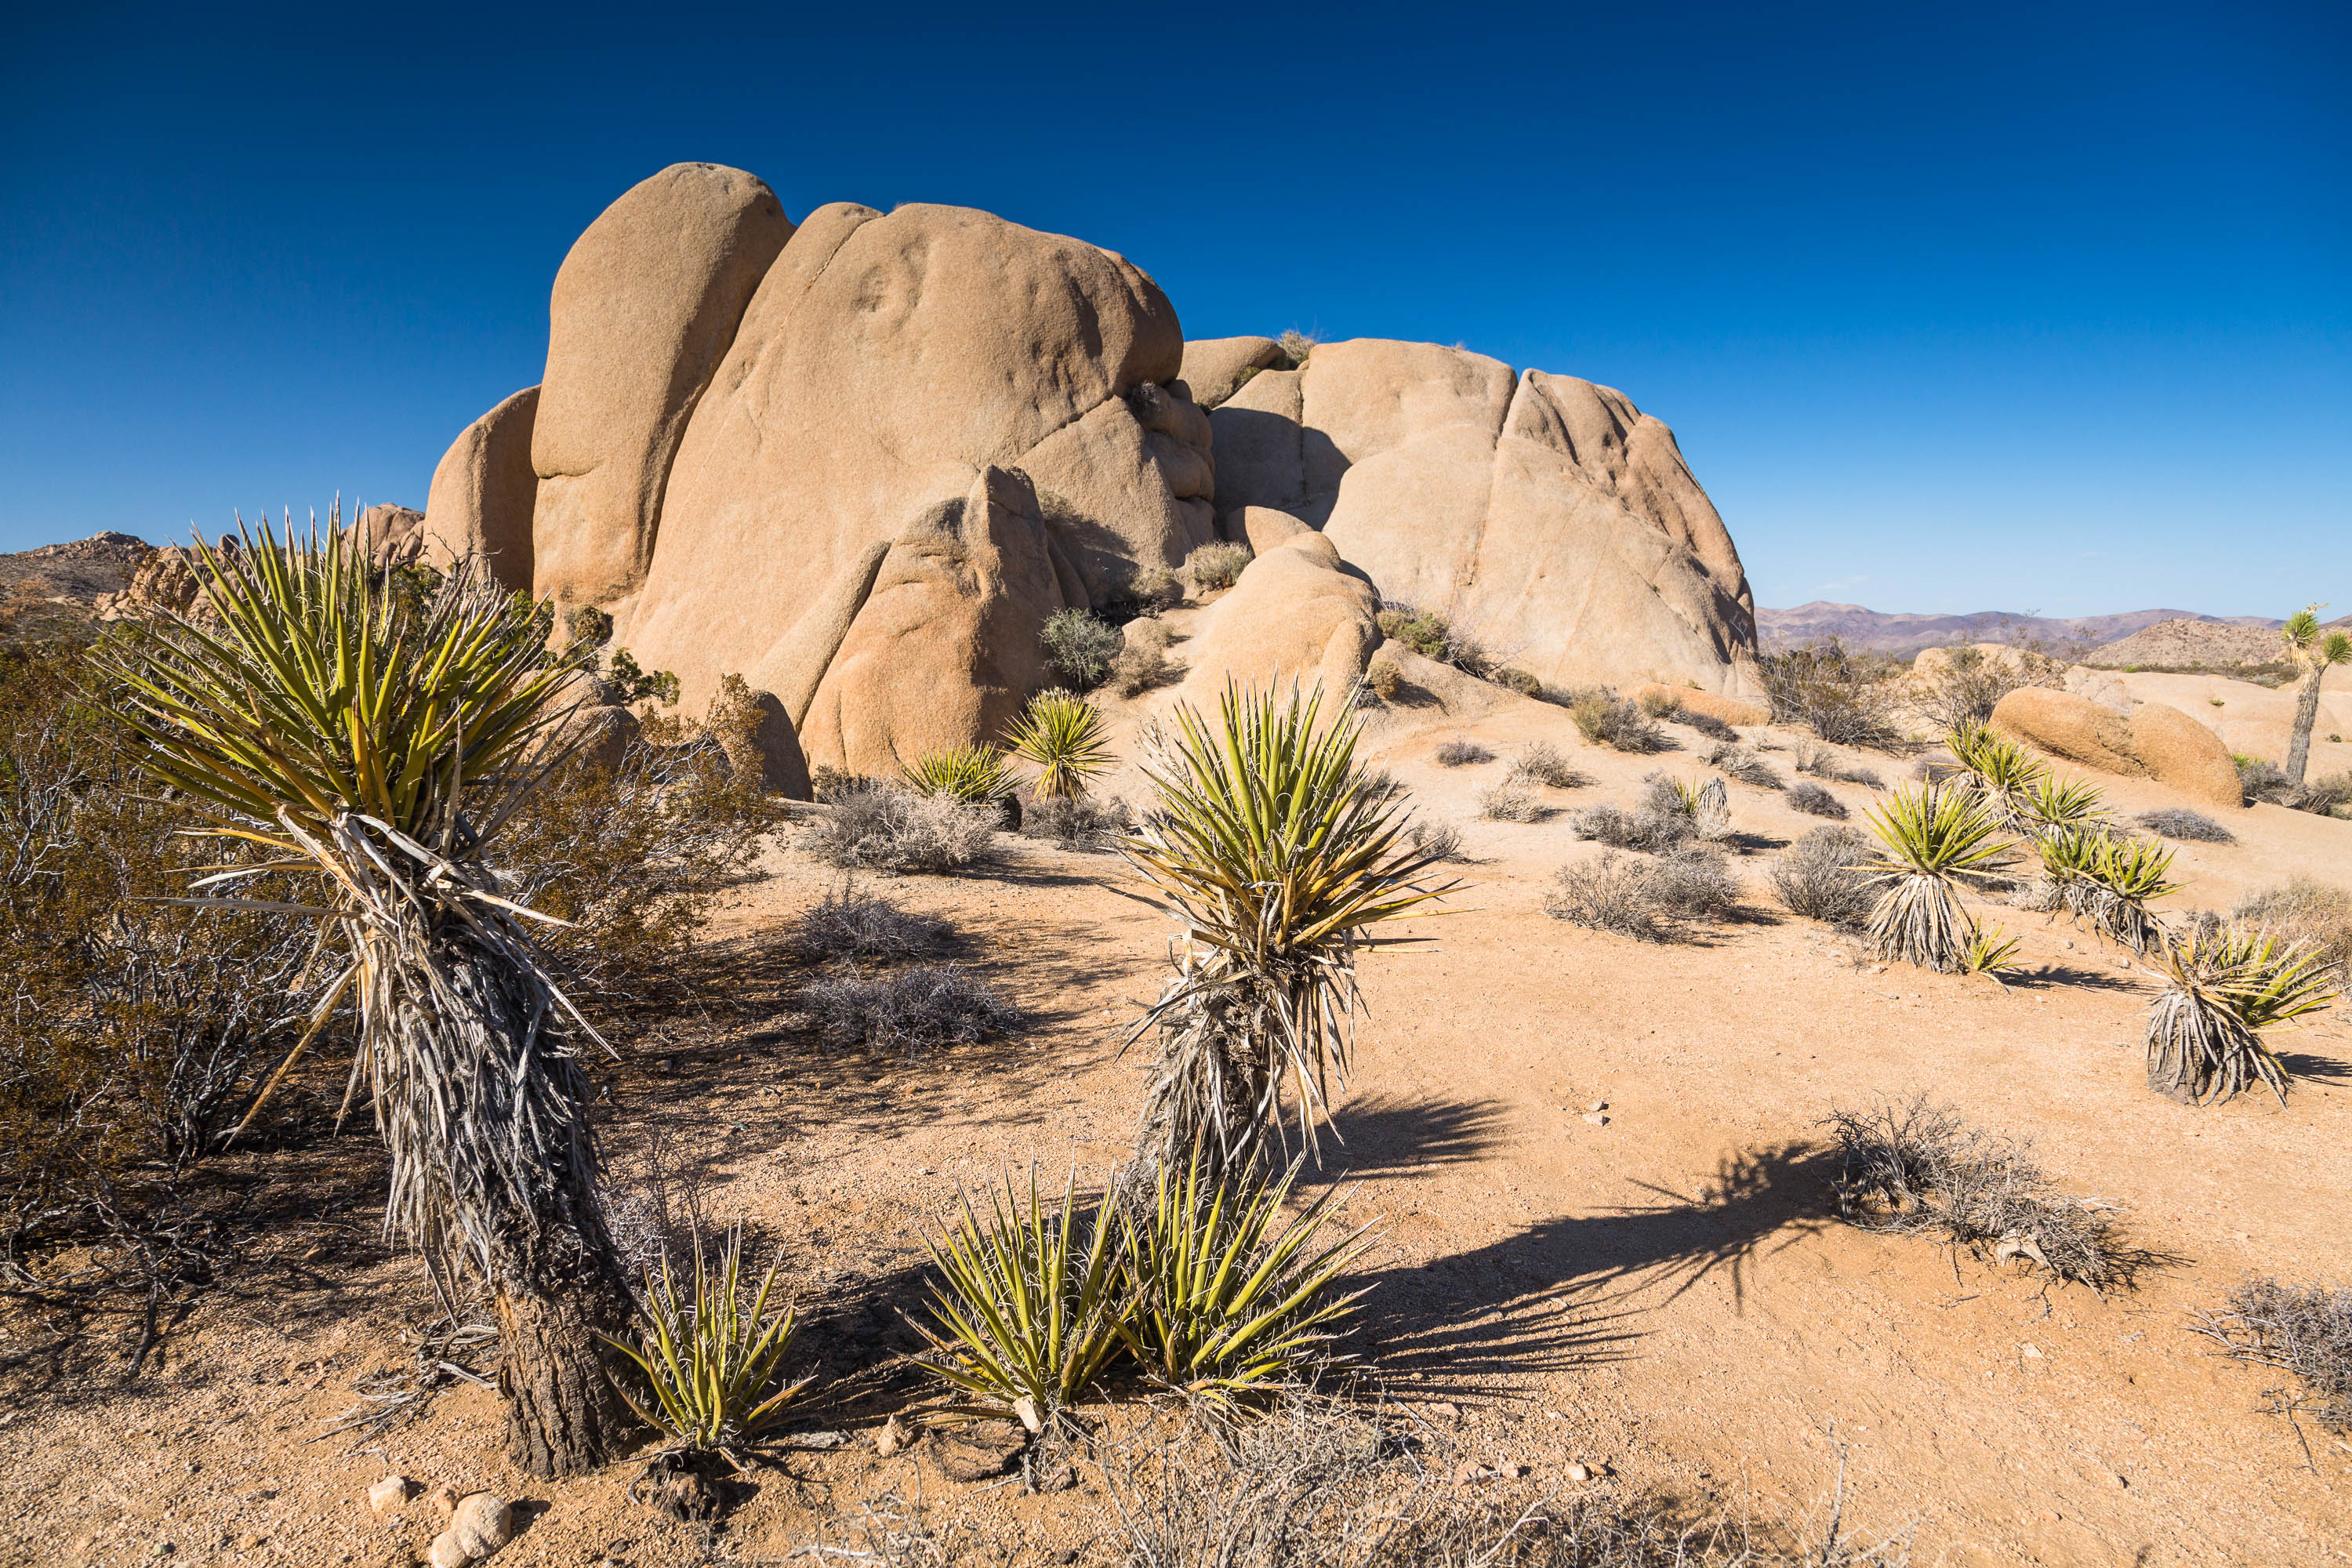 Felsen im Joshua Tree Nationalpark, Kalifornien